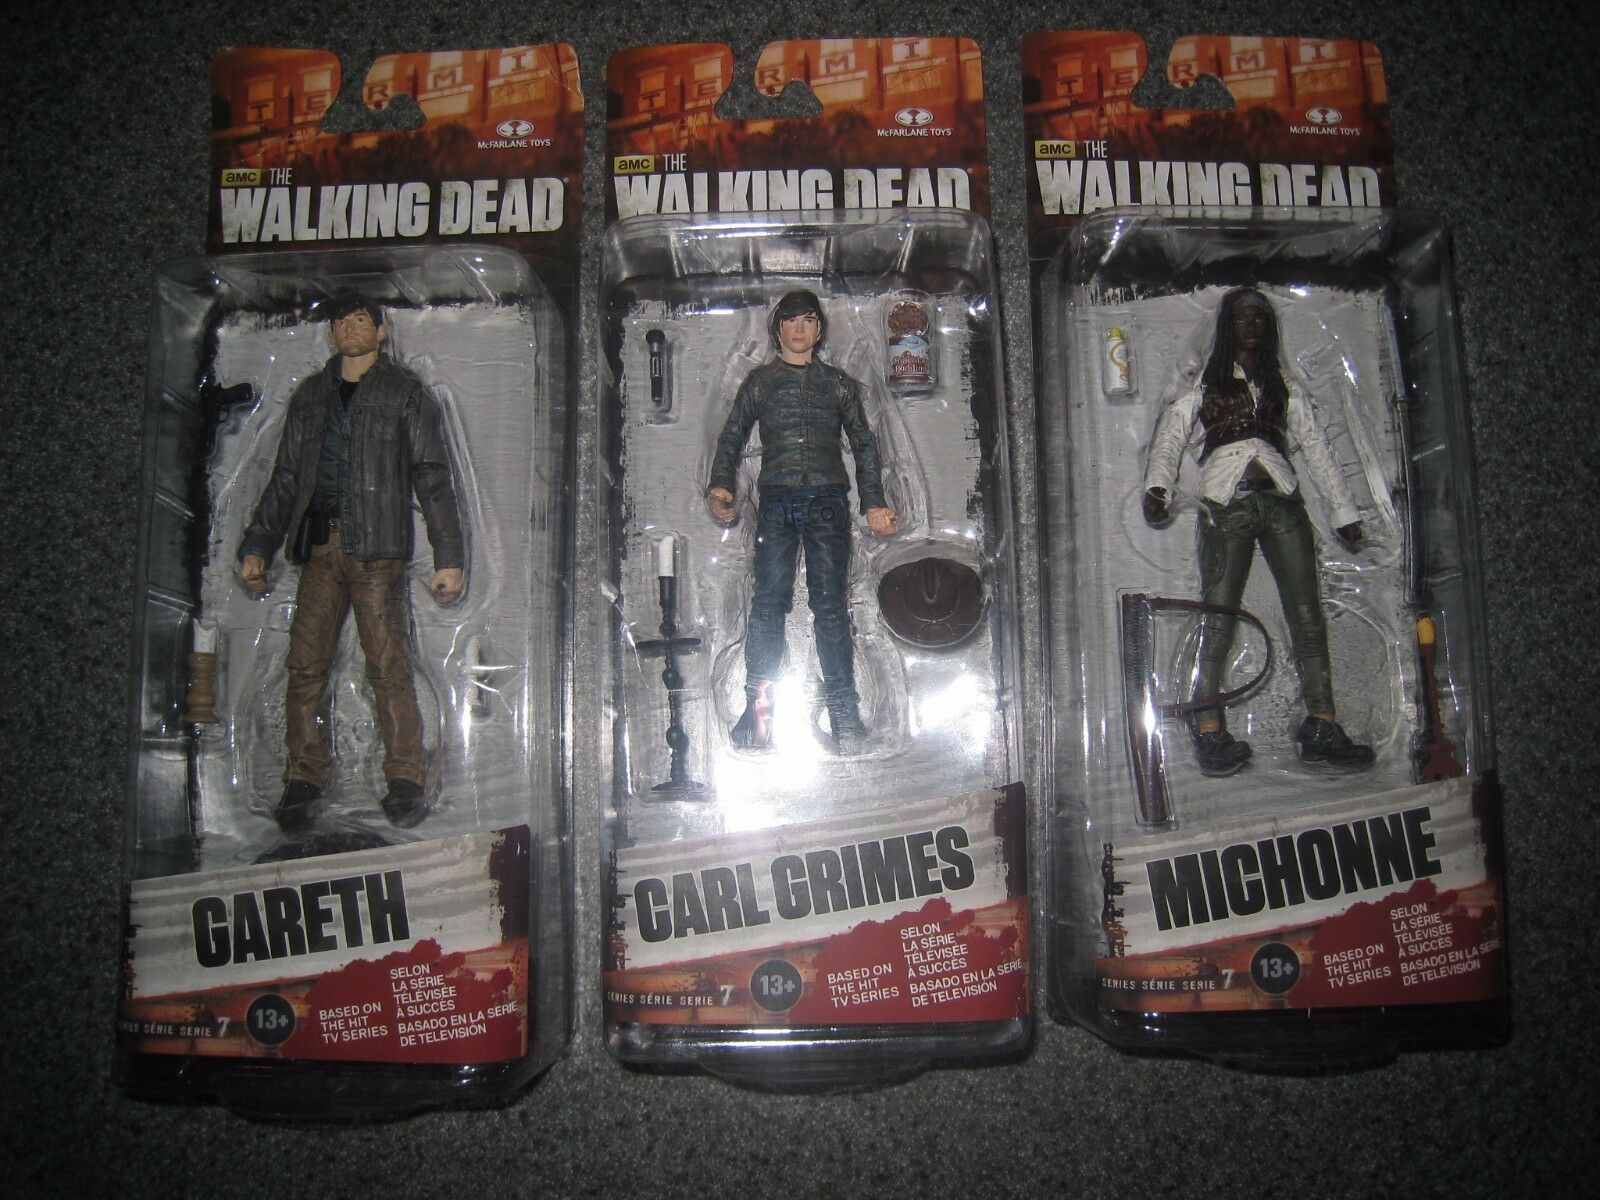 88cdc5b30af NIP AMC THE WALKING DEAD GRIMES GARETH CARL GRIMES DEAD MICHONNE SERIES 7  FIGURES 0366b9